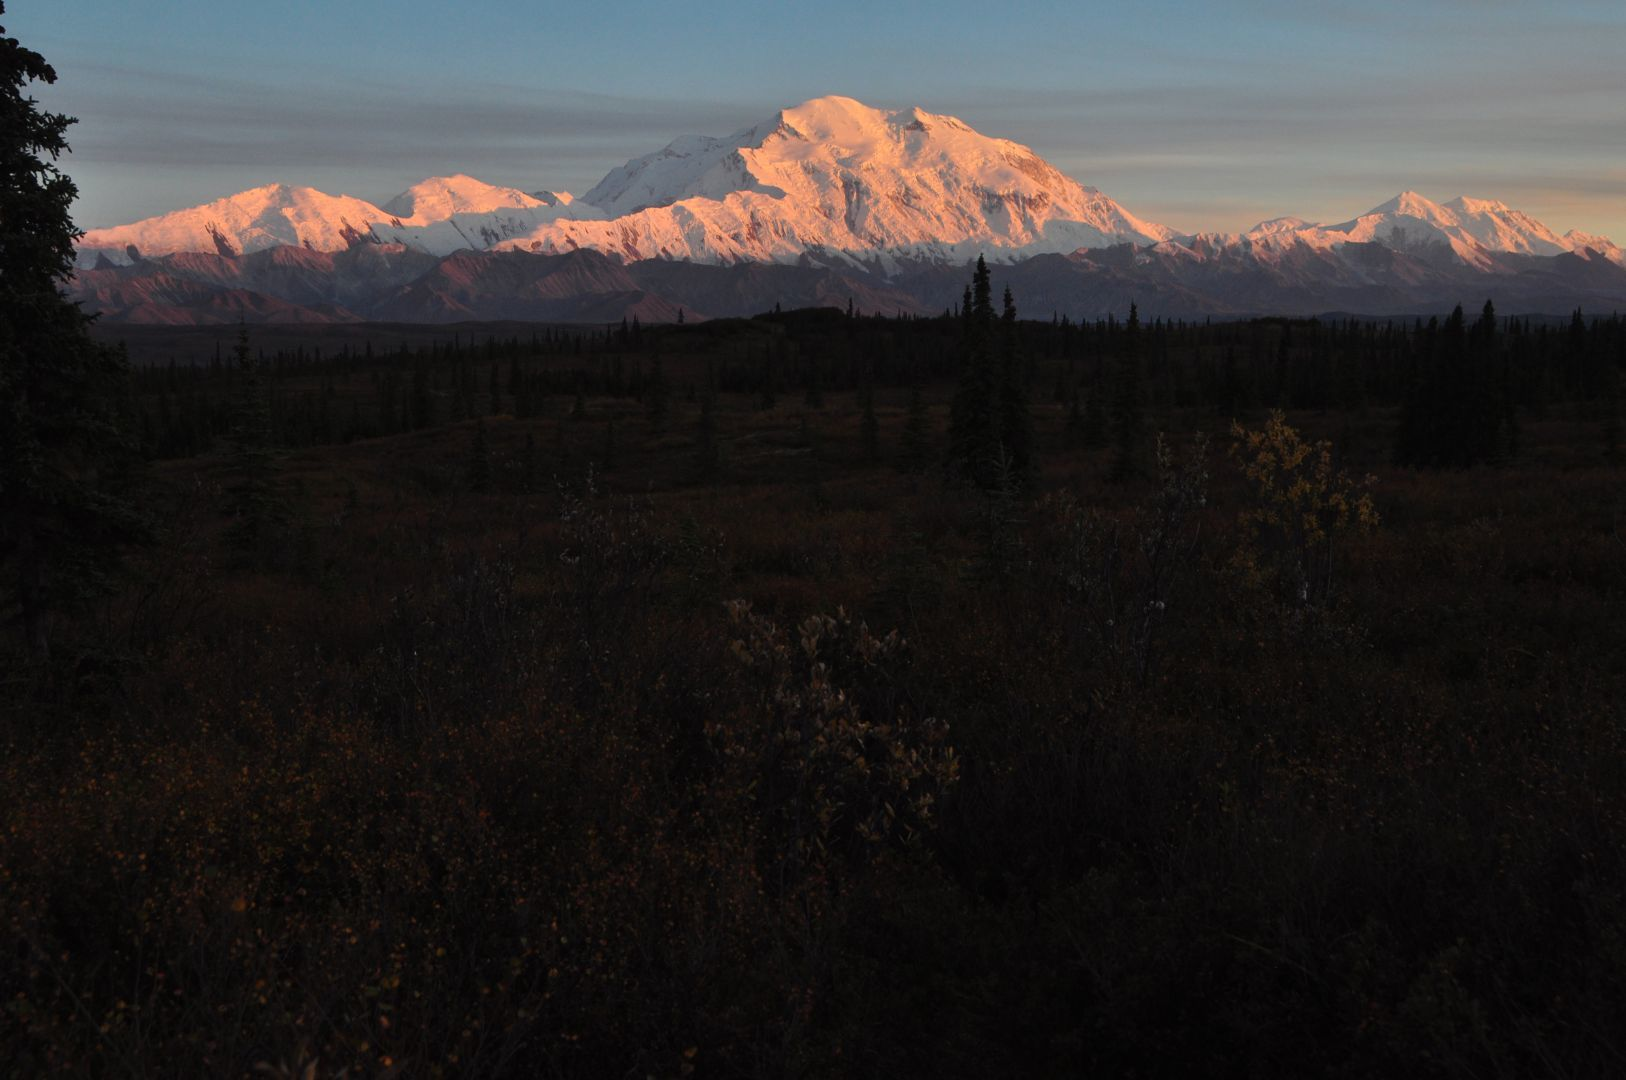 denali at dusk